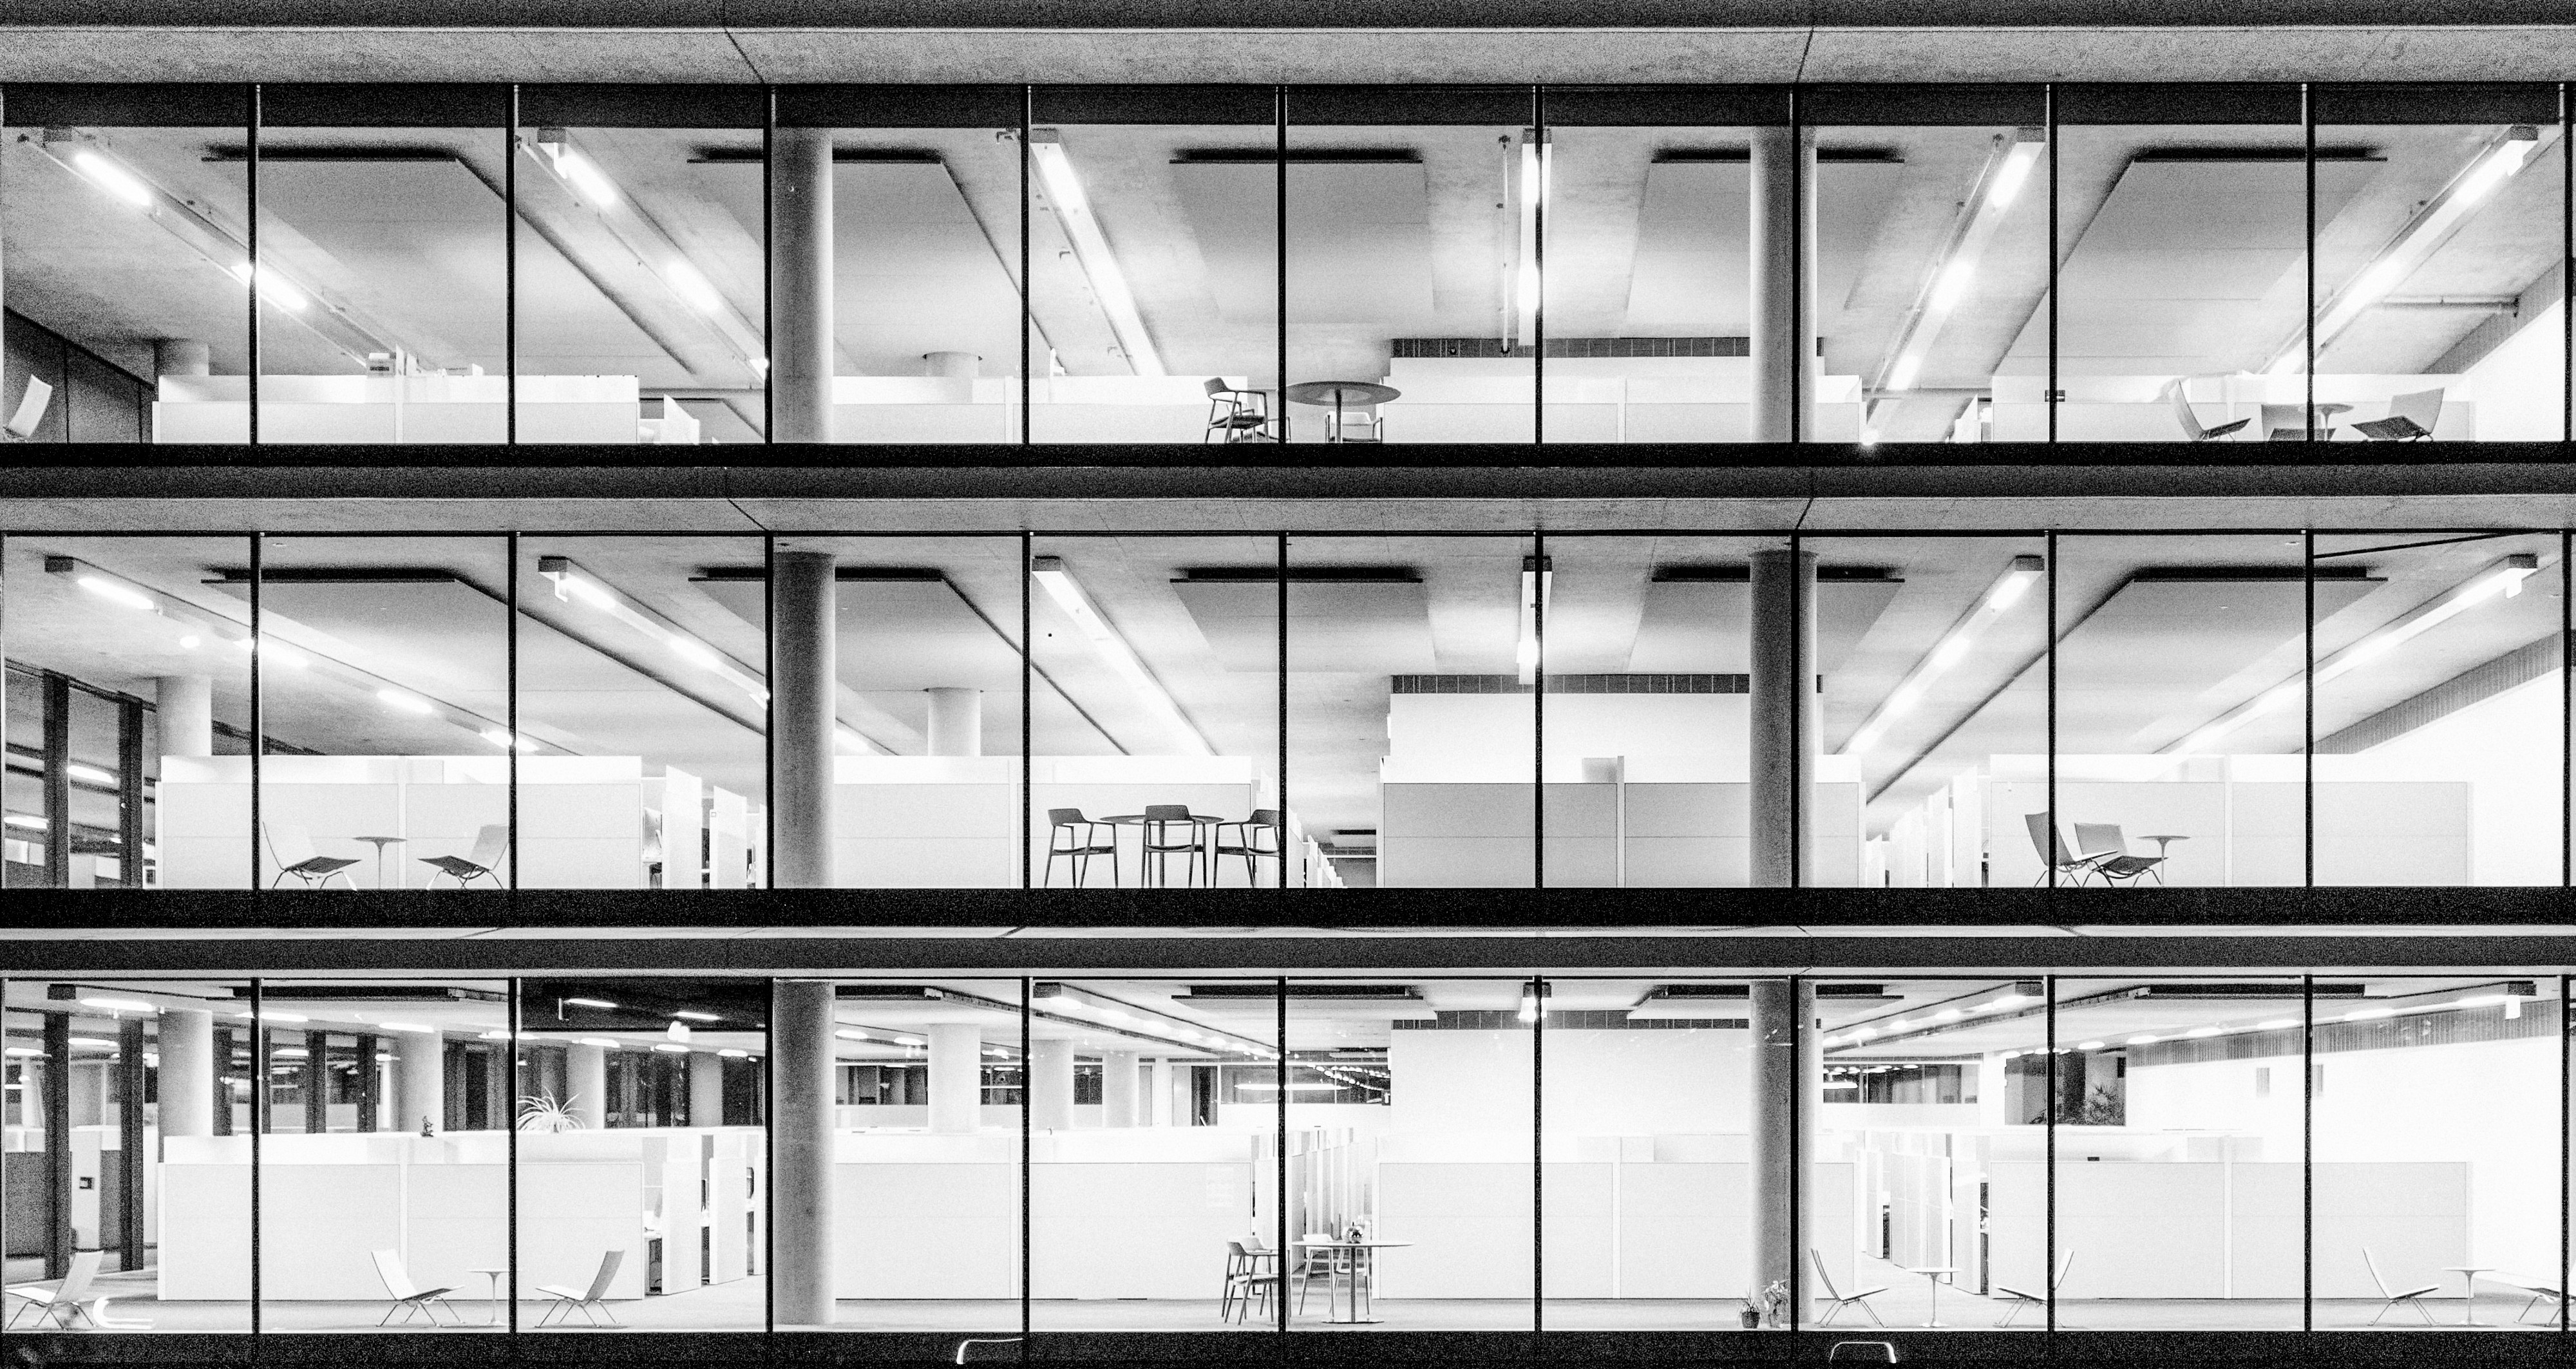 Black and White image of an unoccupied modern office space at night.